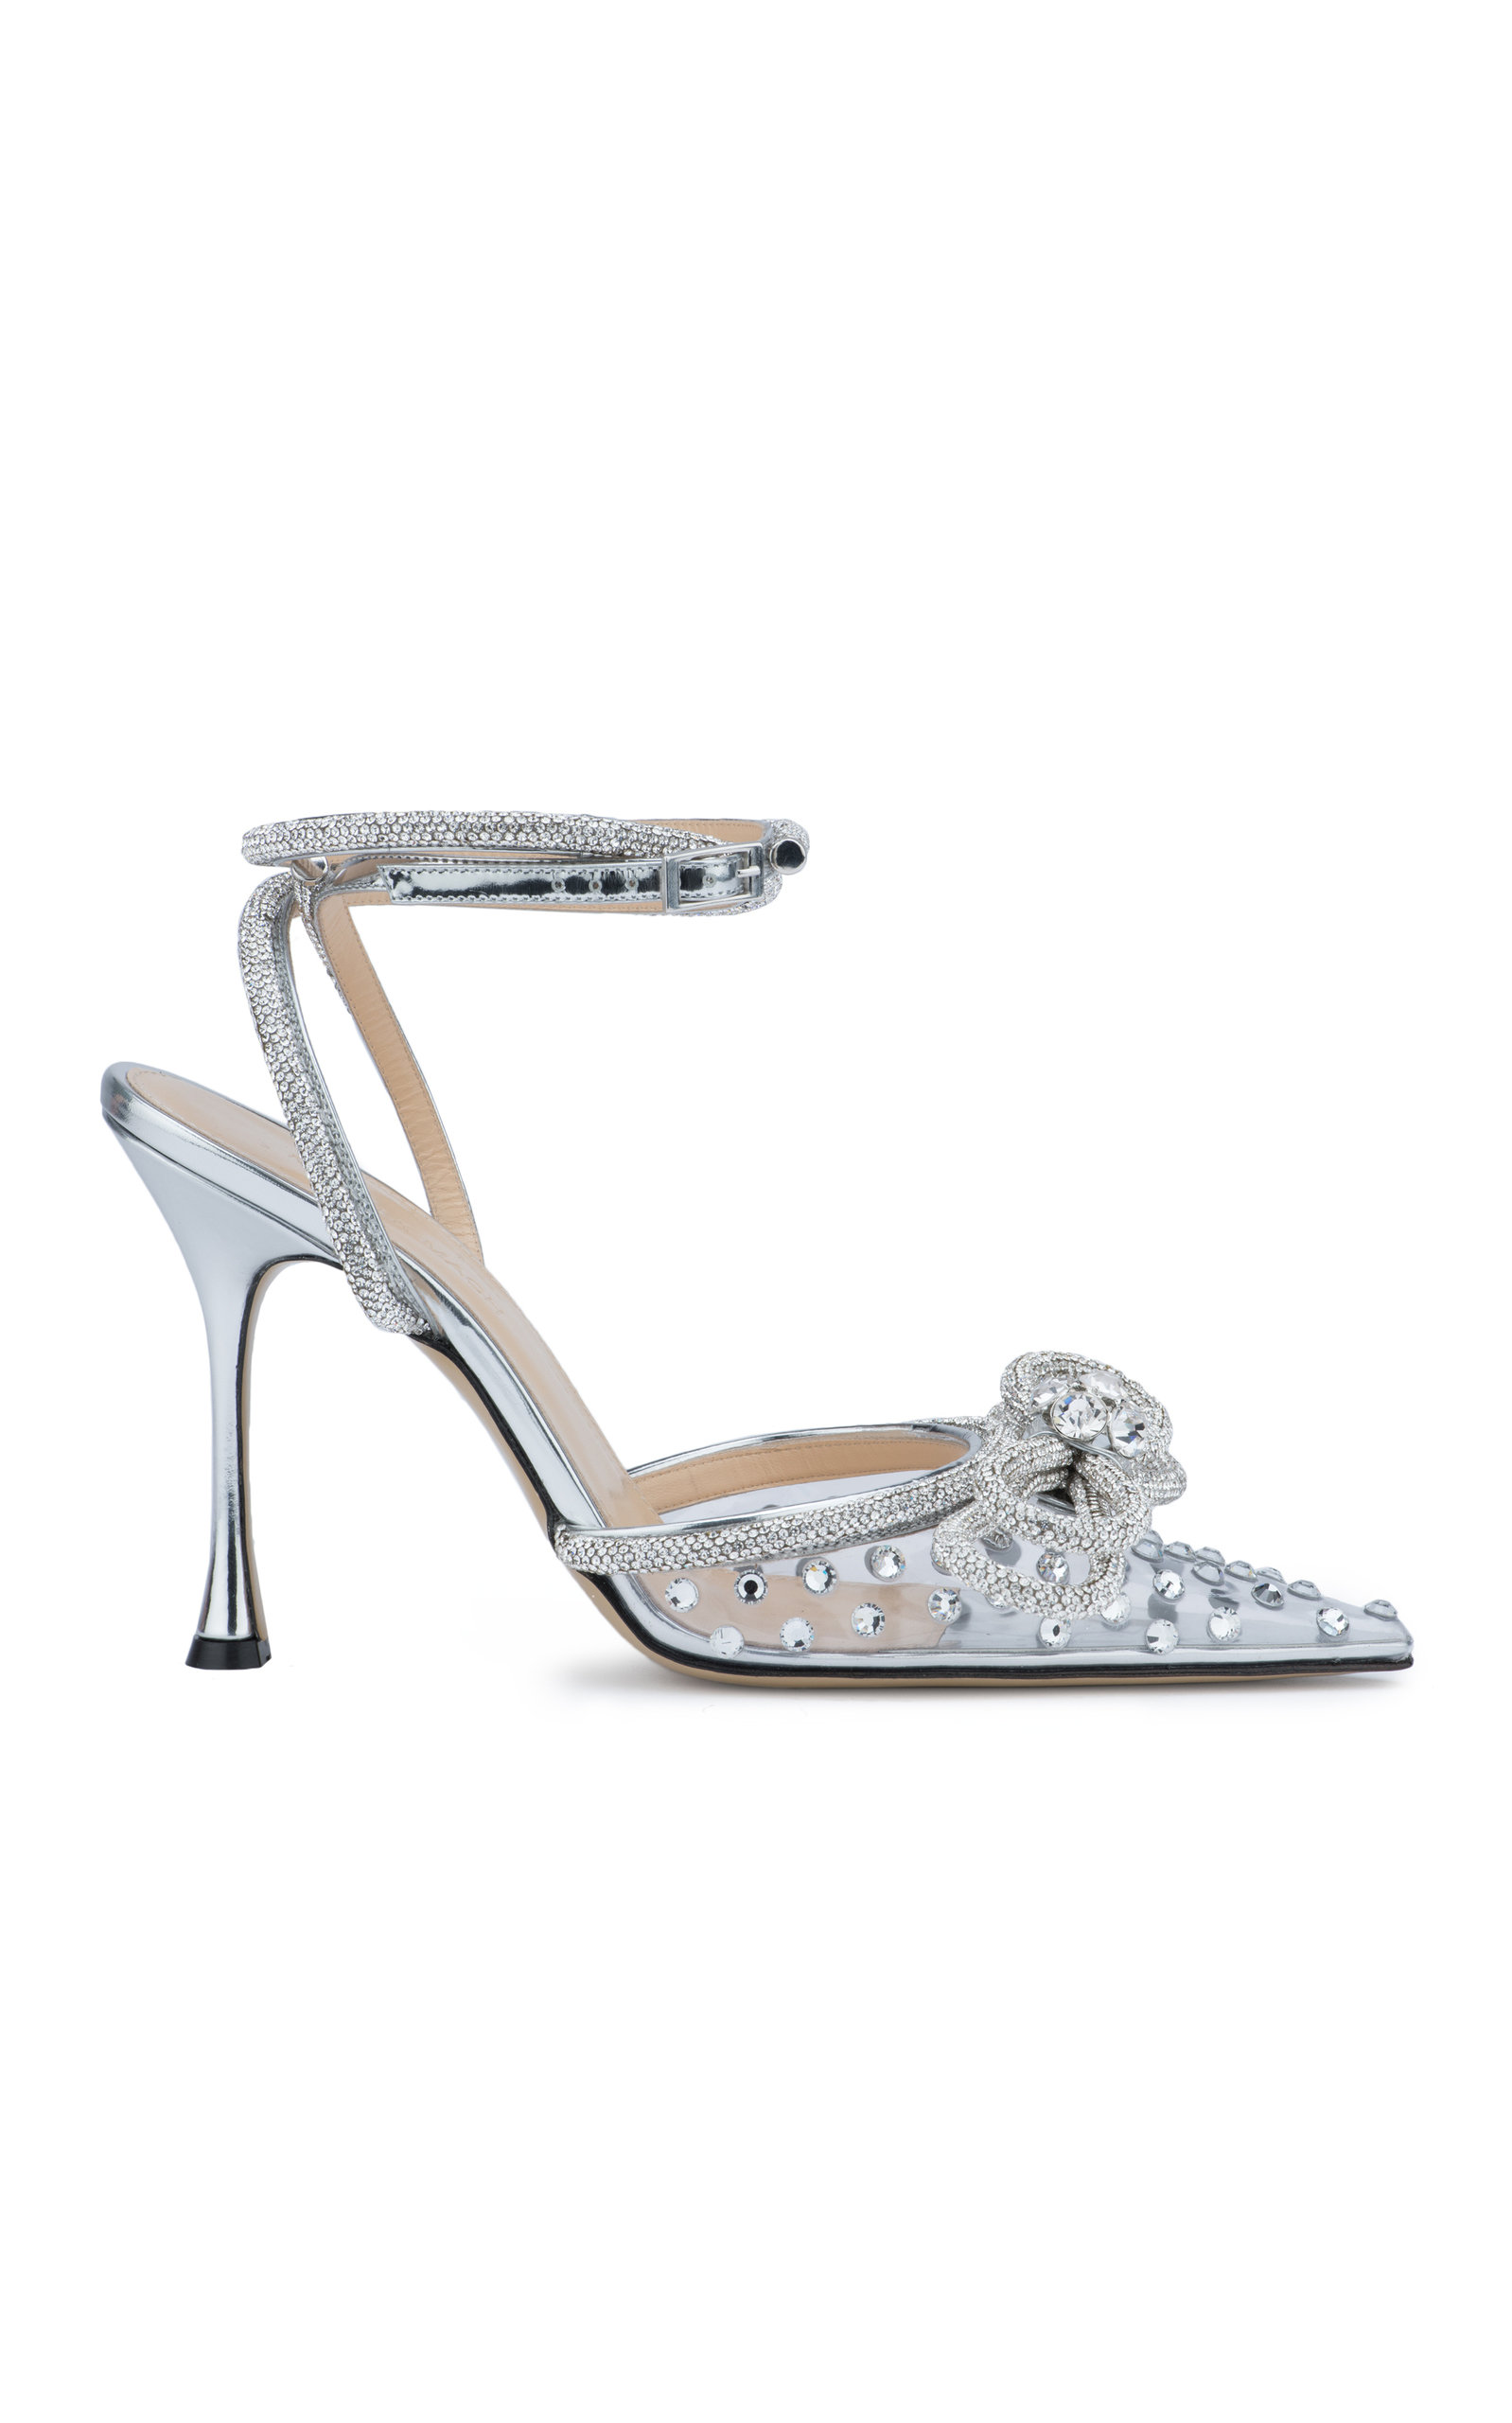 Women's Double-Bow Crystal-Embellished PVC Pumps